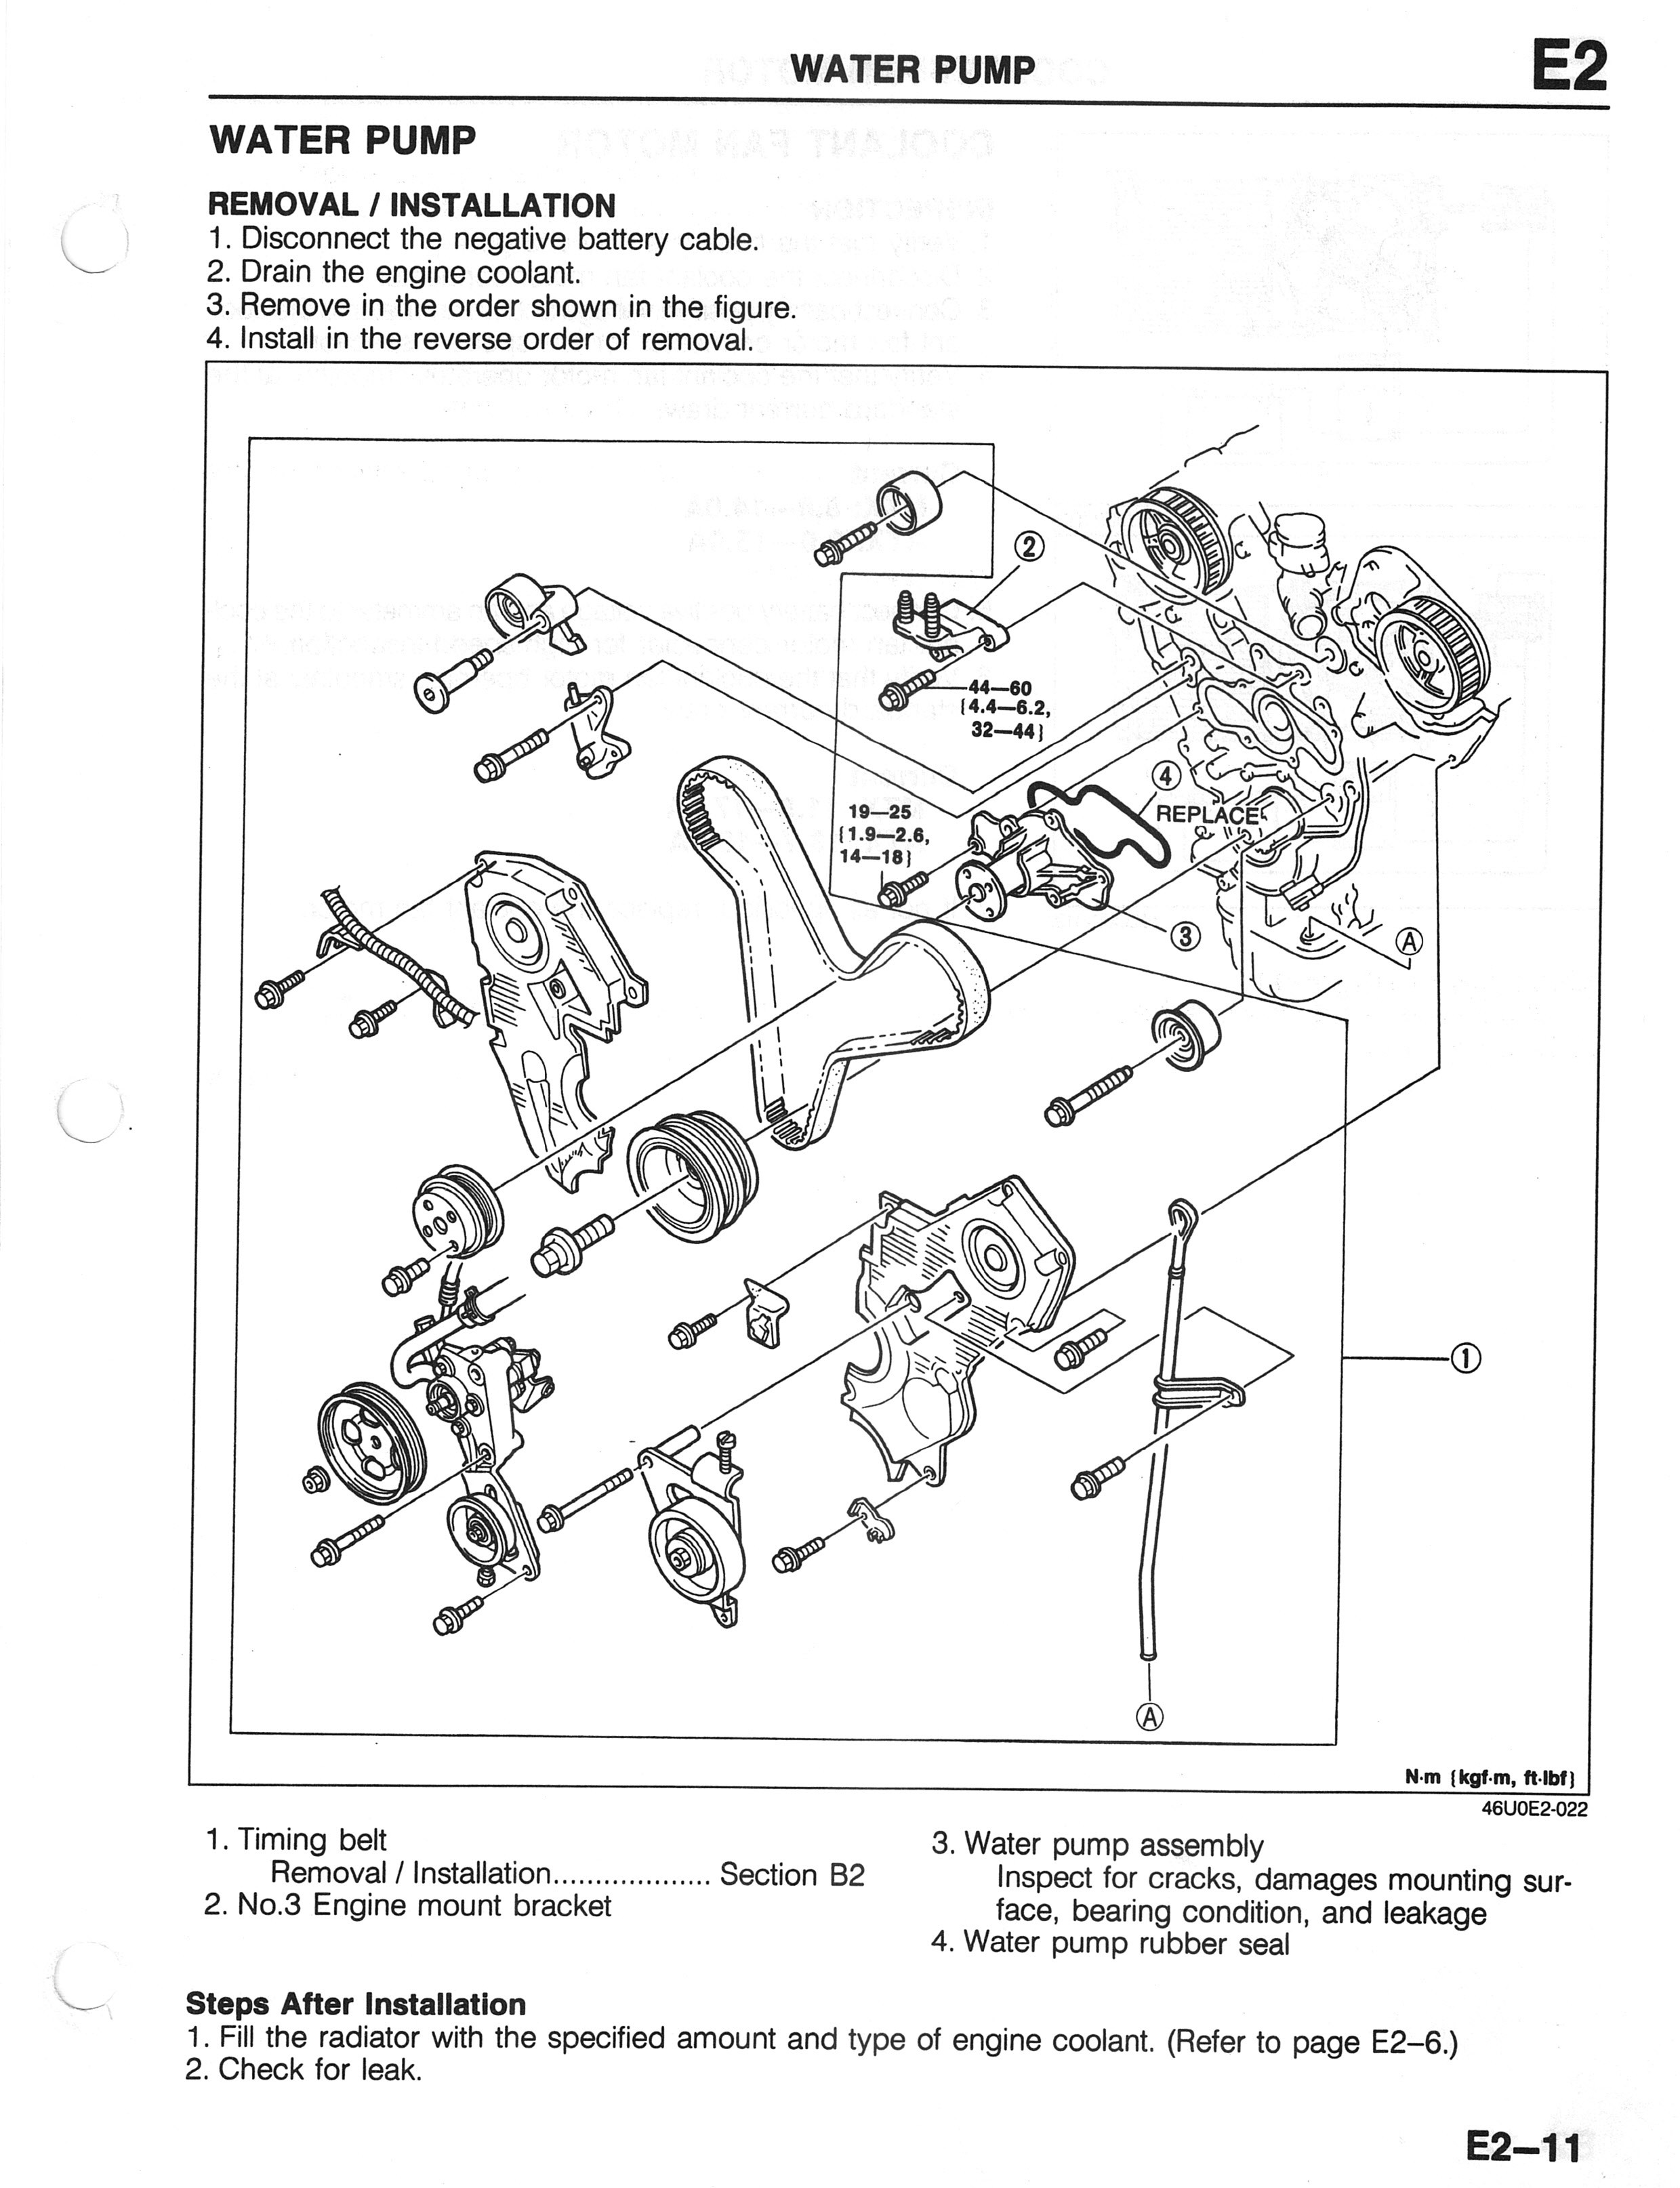 Mazda Mx6 Engine Diagram is It the Water Pump 1993 2002 2 5l V6 Mazda626 forums Of Mazda Mx6 Engine Diagram